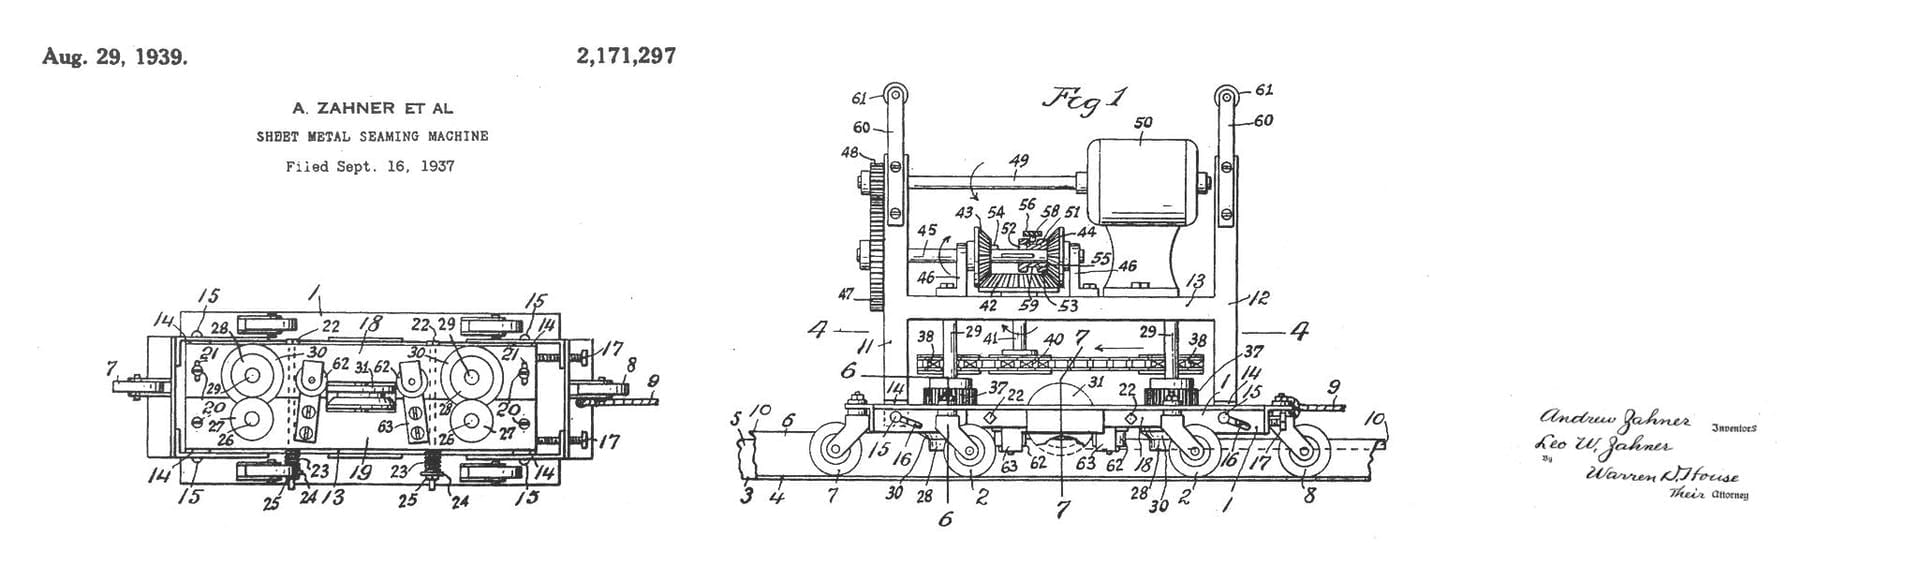 PATENT FOR THE SHEET METAL SEAMING MACHINE